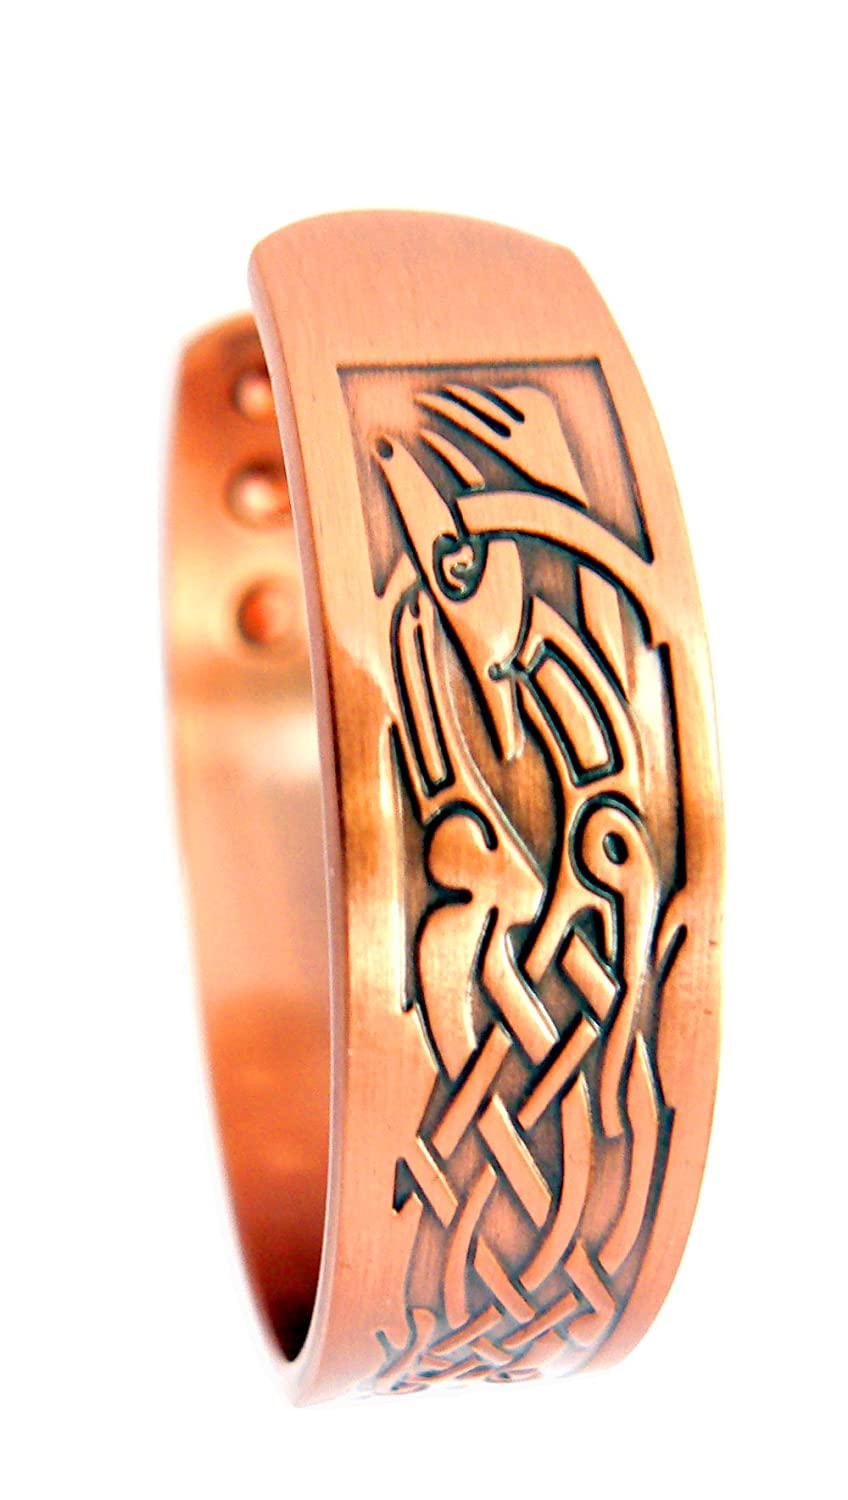 Sufferers wear copper jewelry in the hopes of easing symptoms - Magnetic Copper Arthritis Therapy Bracelet Traditional Celtic Design With 6 Magnets To Relieve Arthritis For Men Or Women By Chain Relief Amazon Co Uk